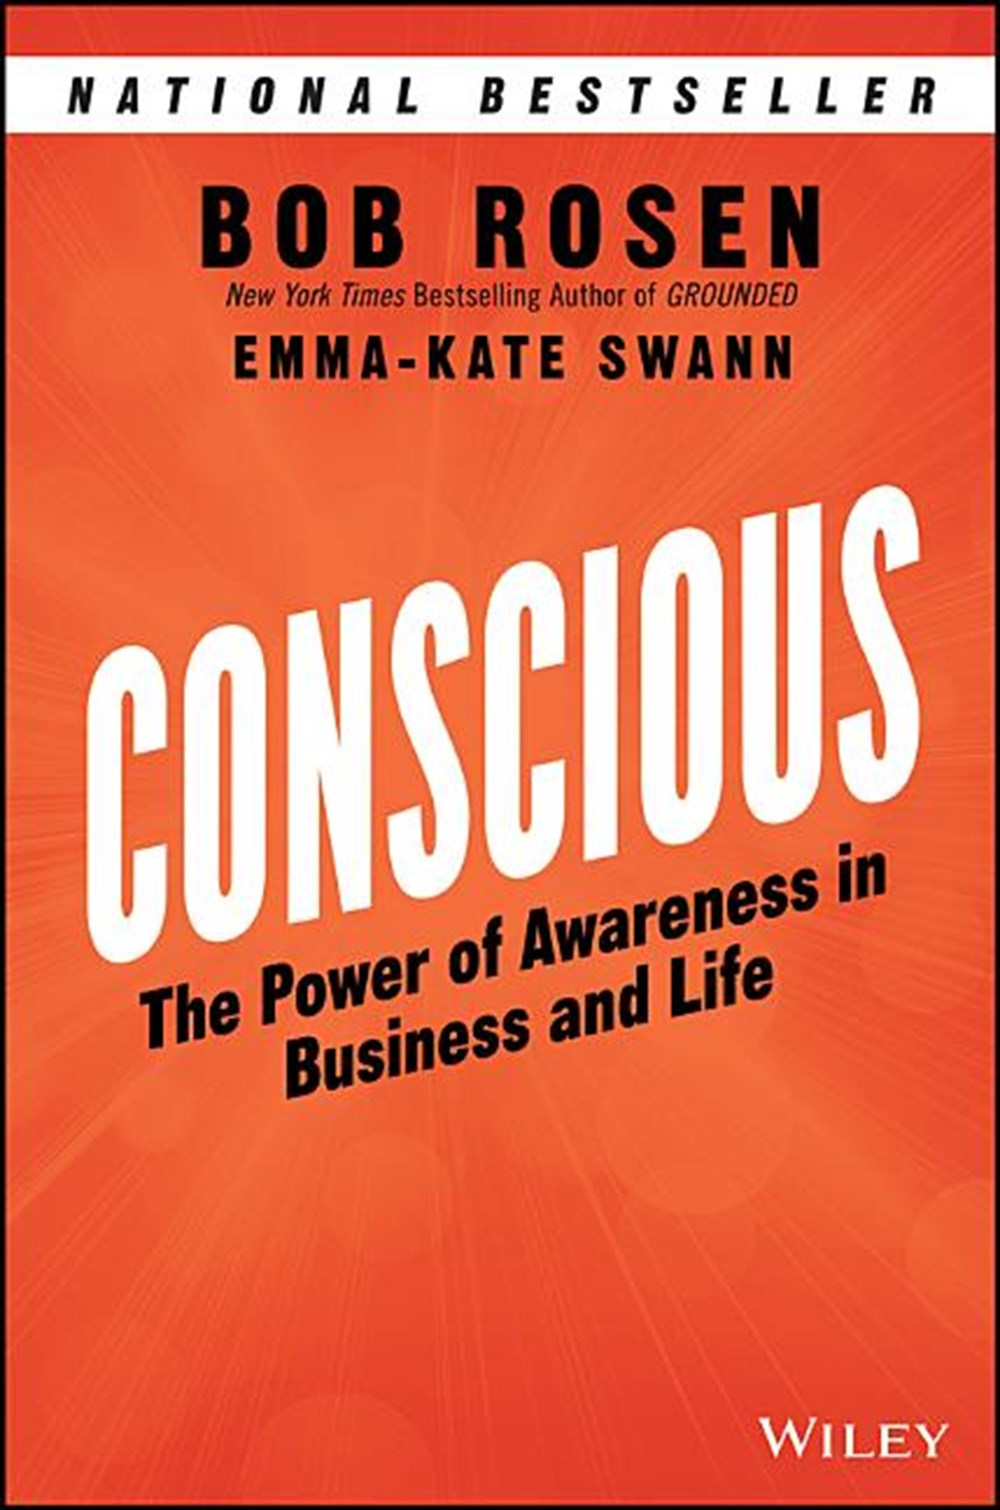 Conscious The Power of Awareness in Business and Life